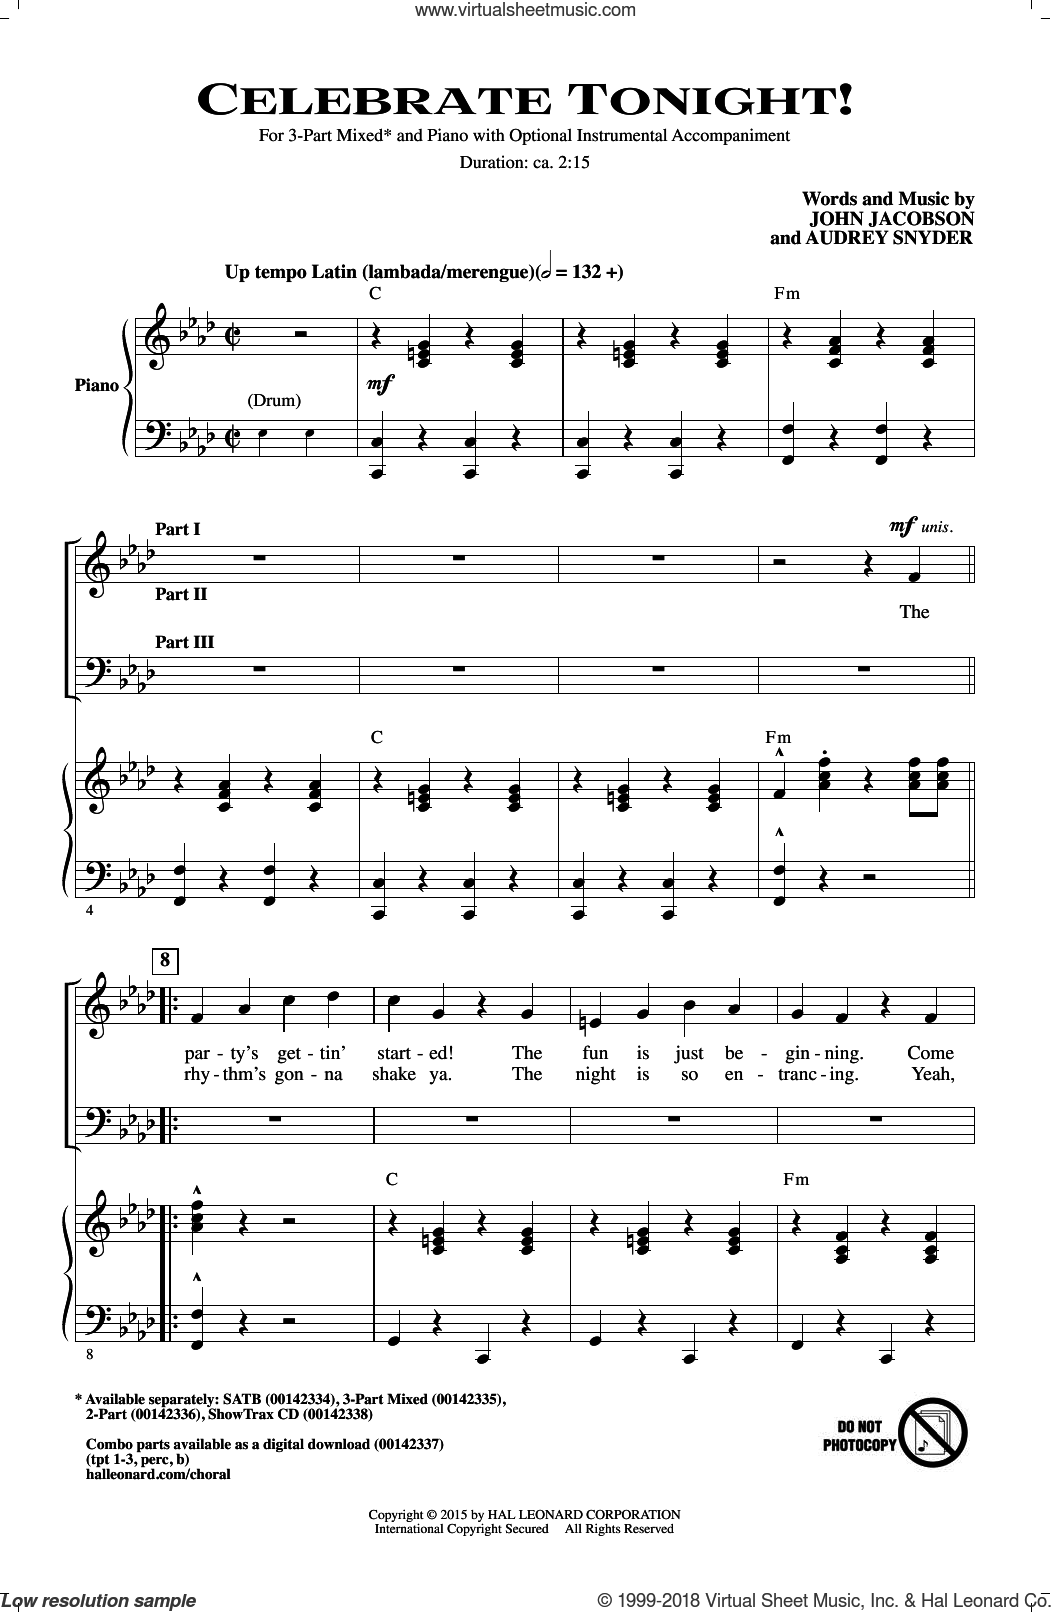 Celebrate Tonight! sheet music for choir (3-Part Mixed) by Audrey Snyder and John Jacobson, intermediate